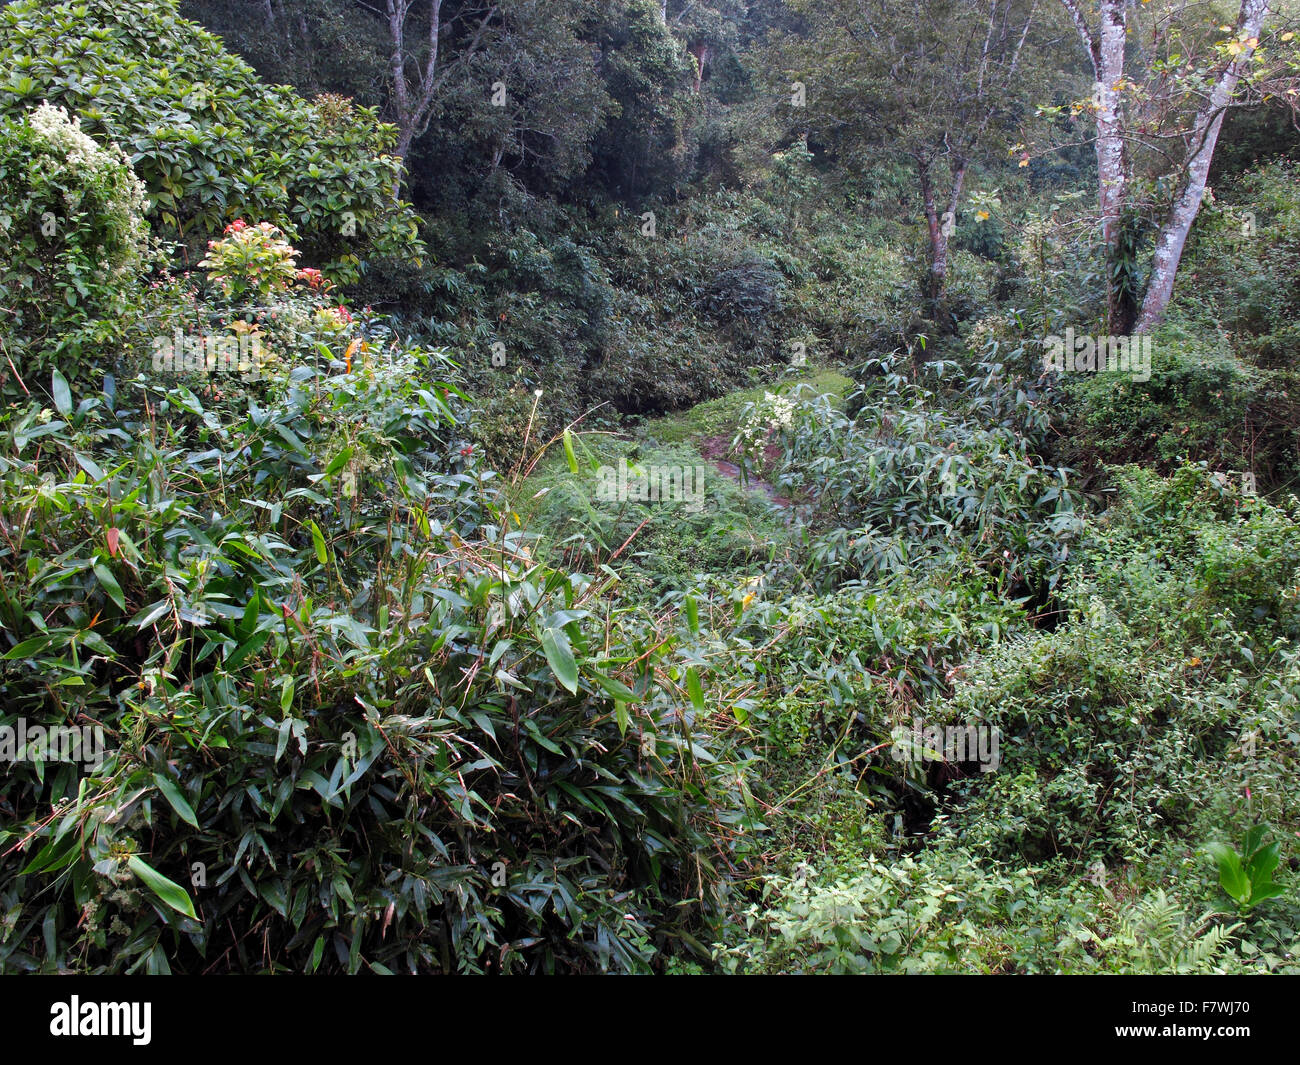 In the Periyar Tiger Reserve, Kerala, India - Stock Image